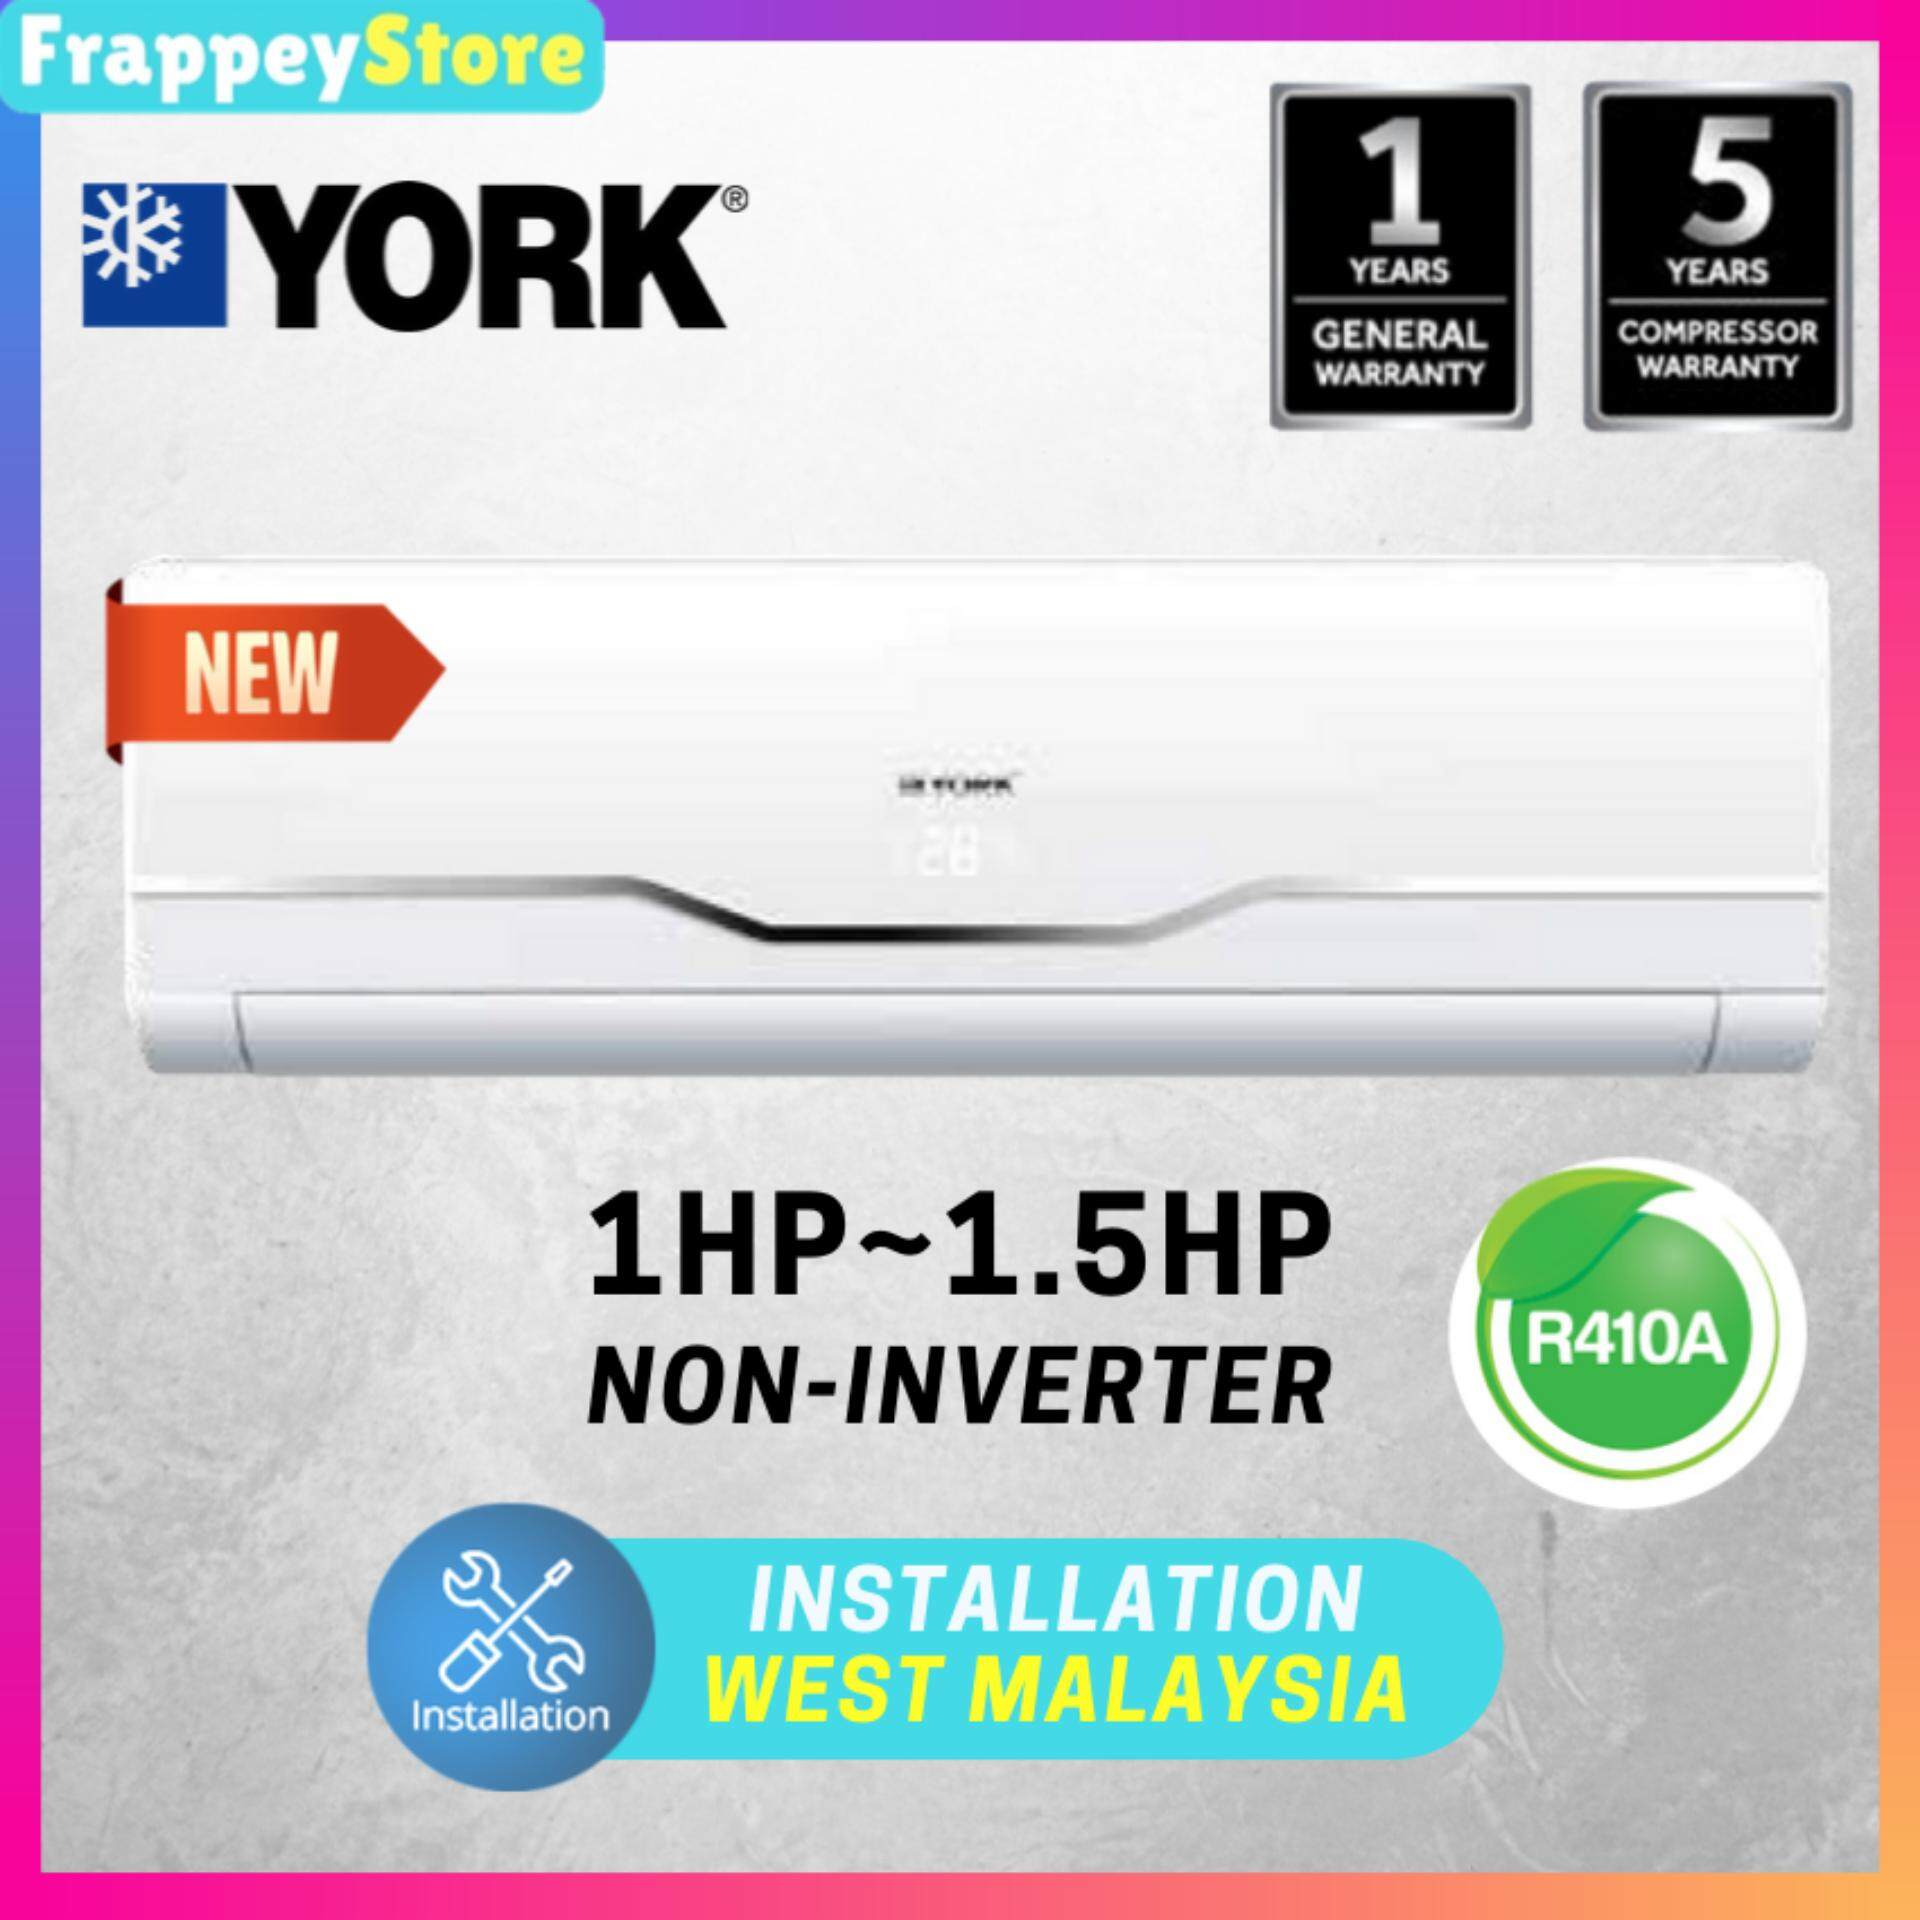 (Frappey)York 1HP / 1.5HP Air Conditioner, Non Inverter R410a Aircond With LED Light (YWM3F10DAS)(YWM3F15DAS) image on snachetto.com